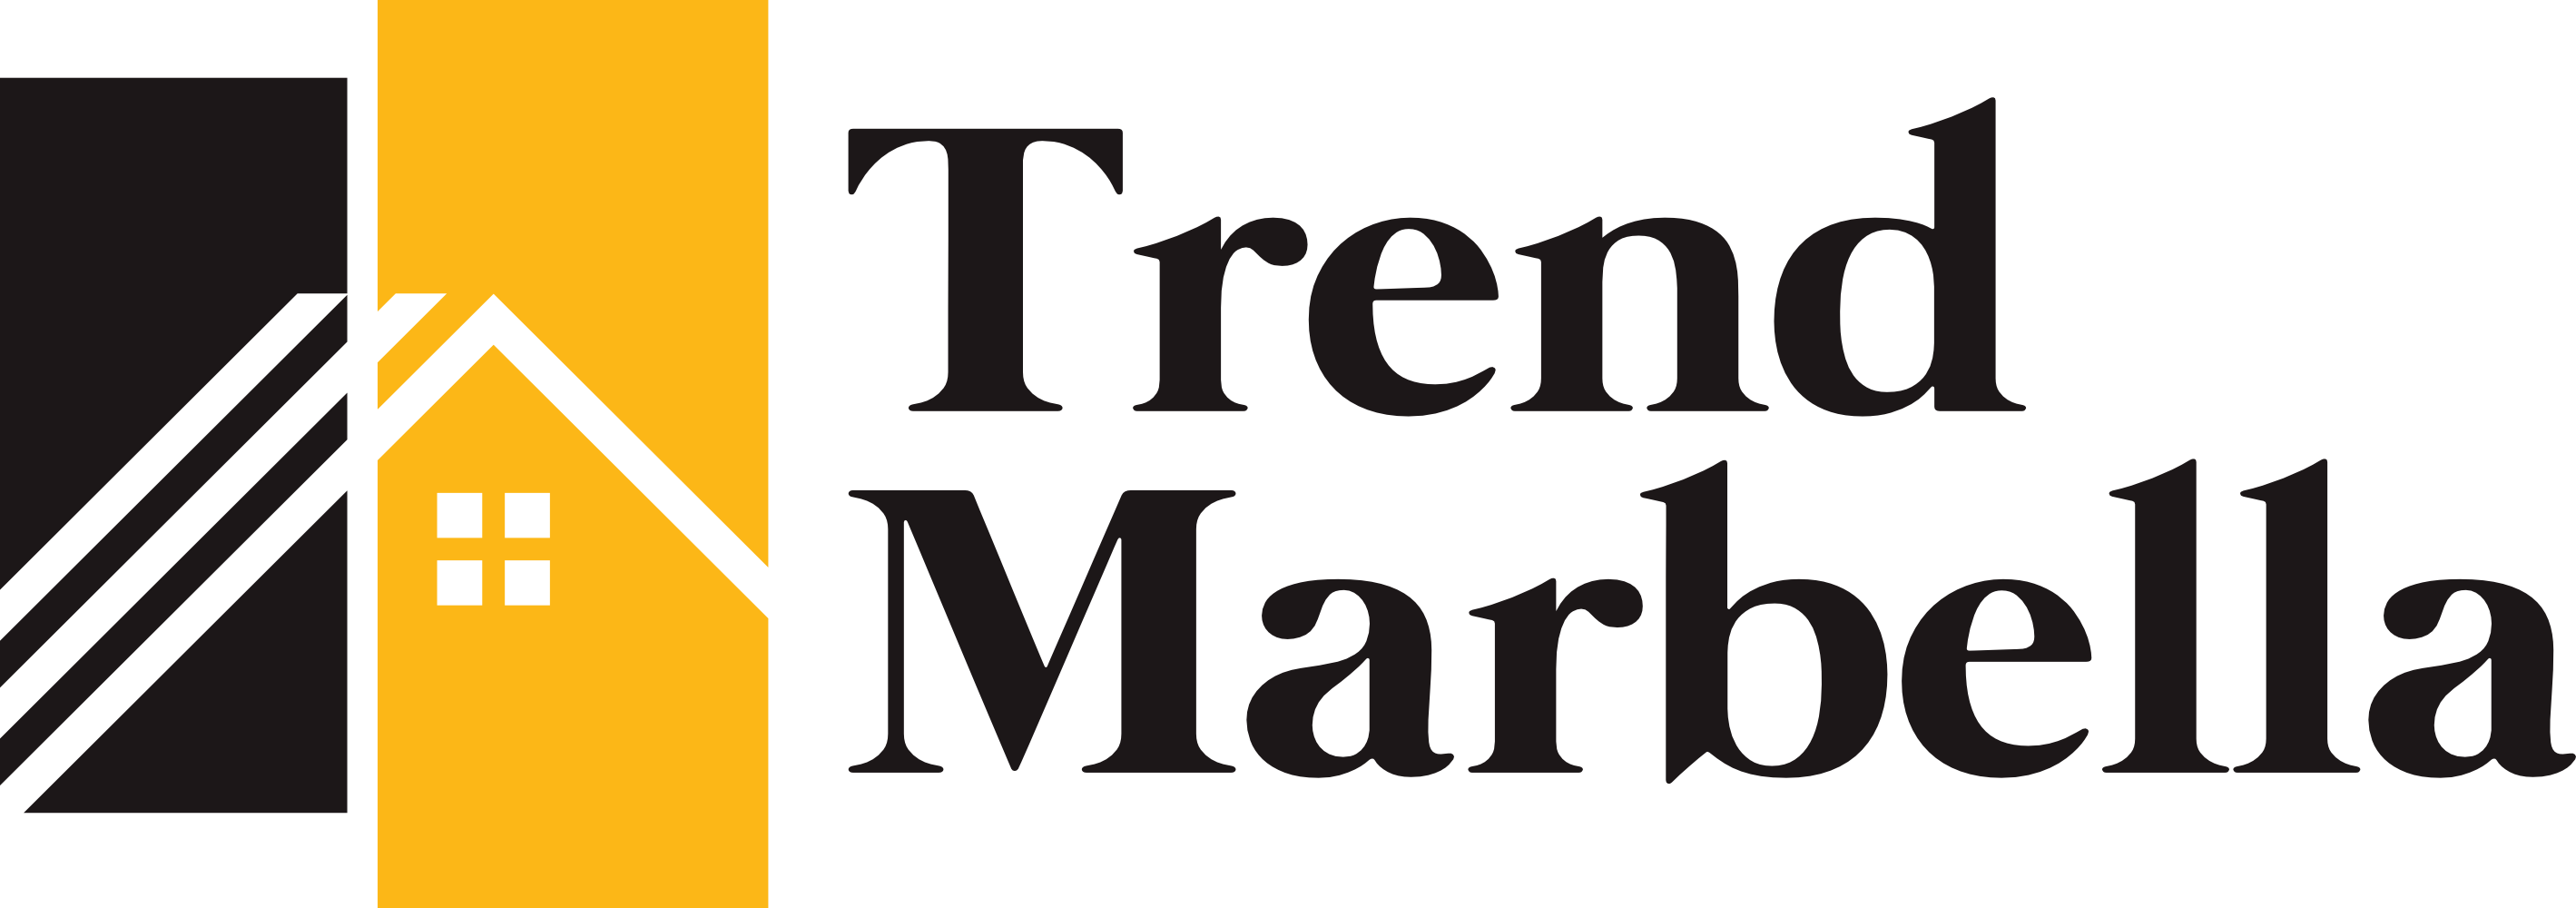 logo-trend-marbella-final NB.png (97 KB)